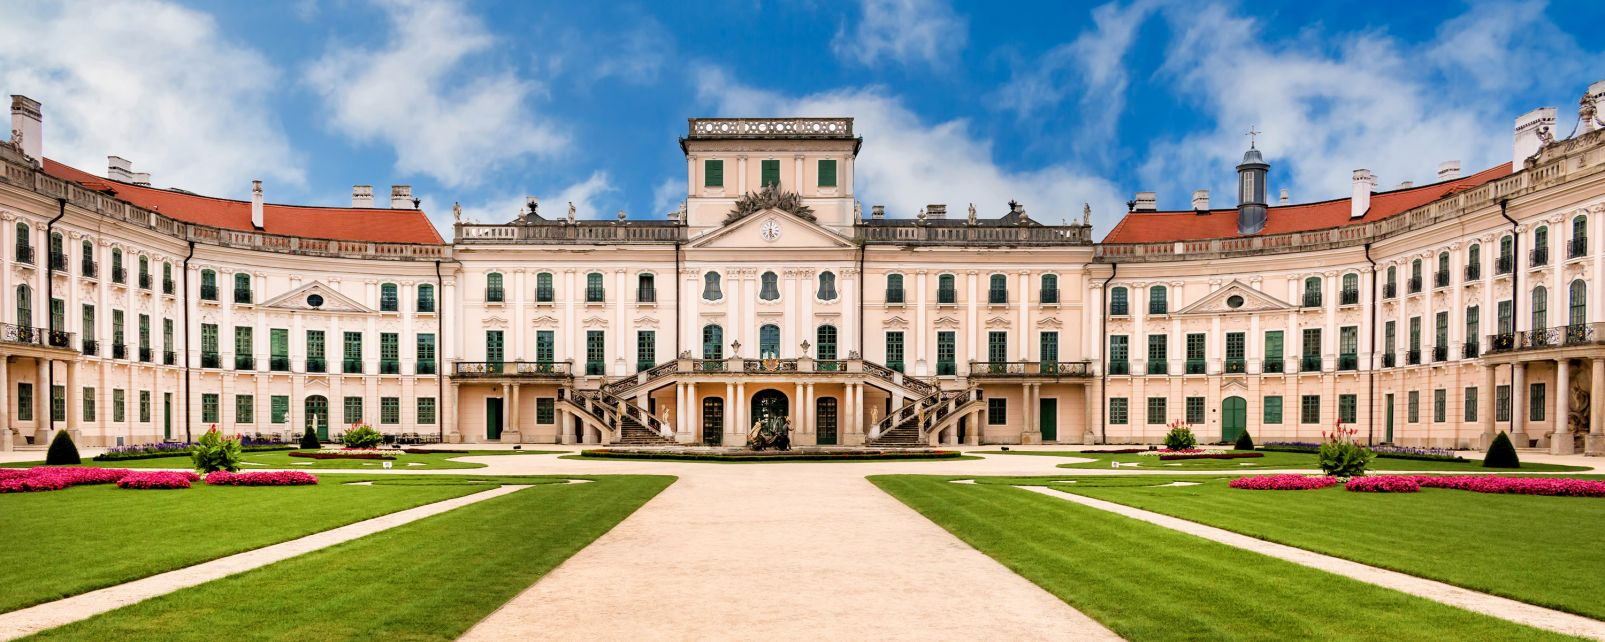 Les monuments, fertod, haydn, hongrie, monument, europe, esztherary, chateau, palais, rococco